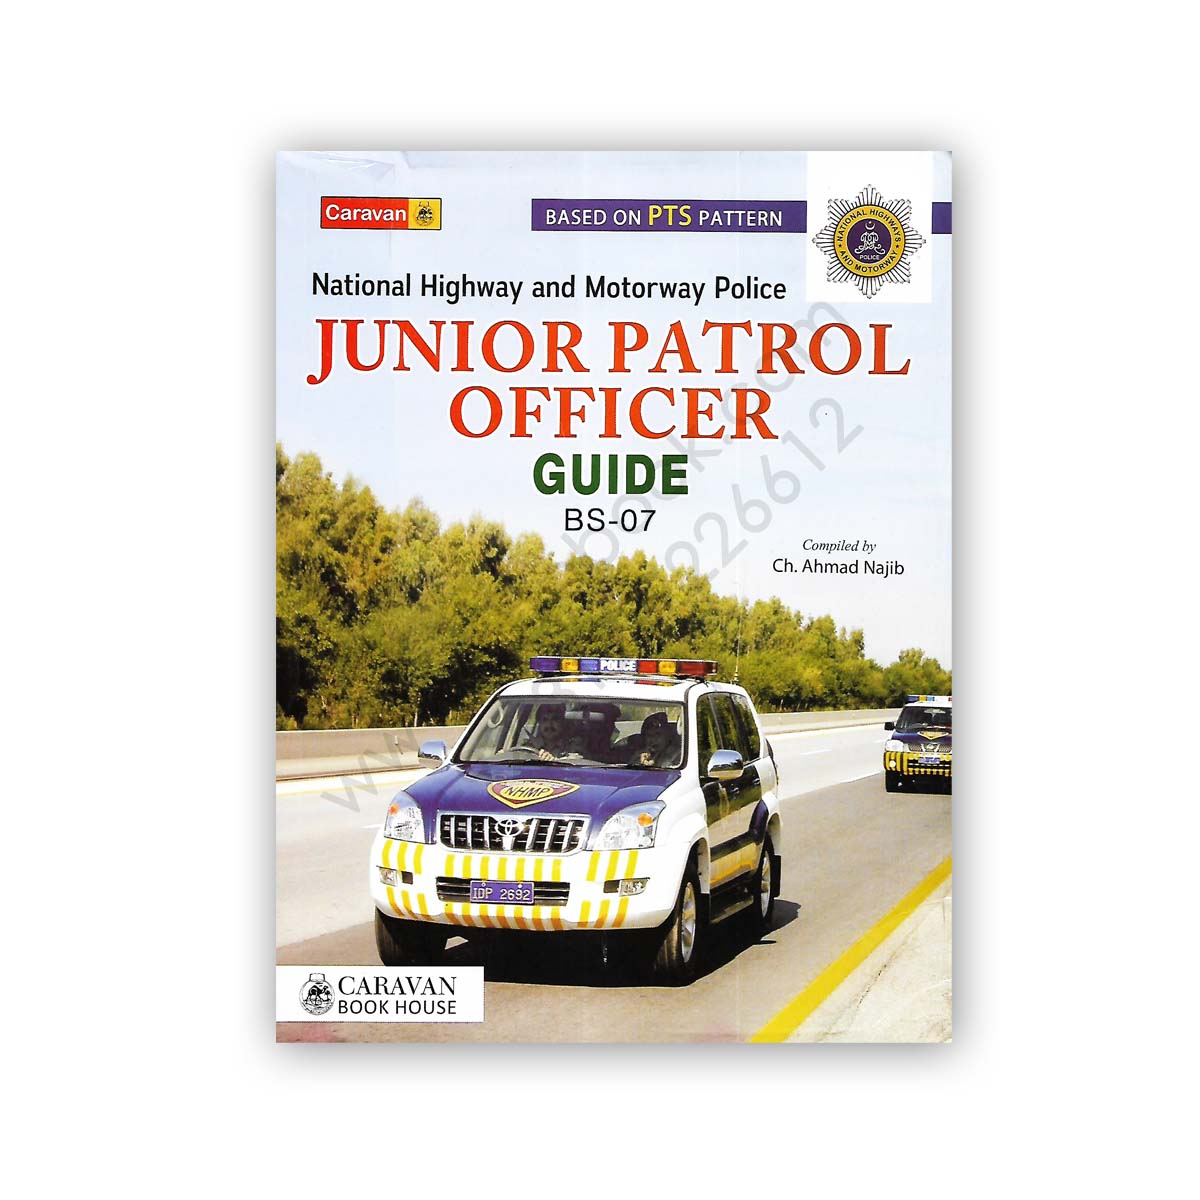 Junior patrol officer